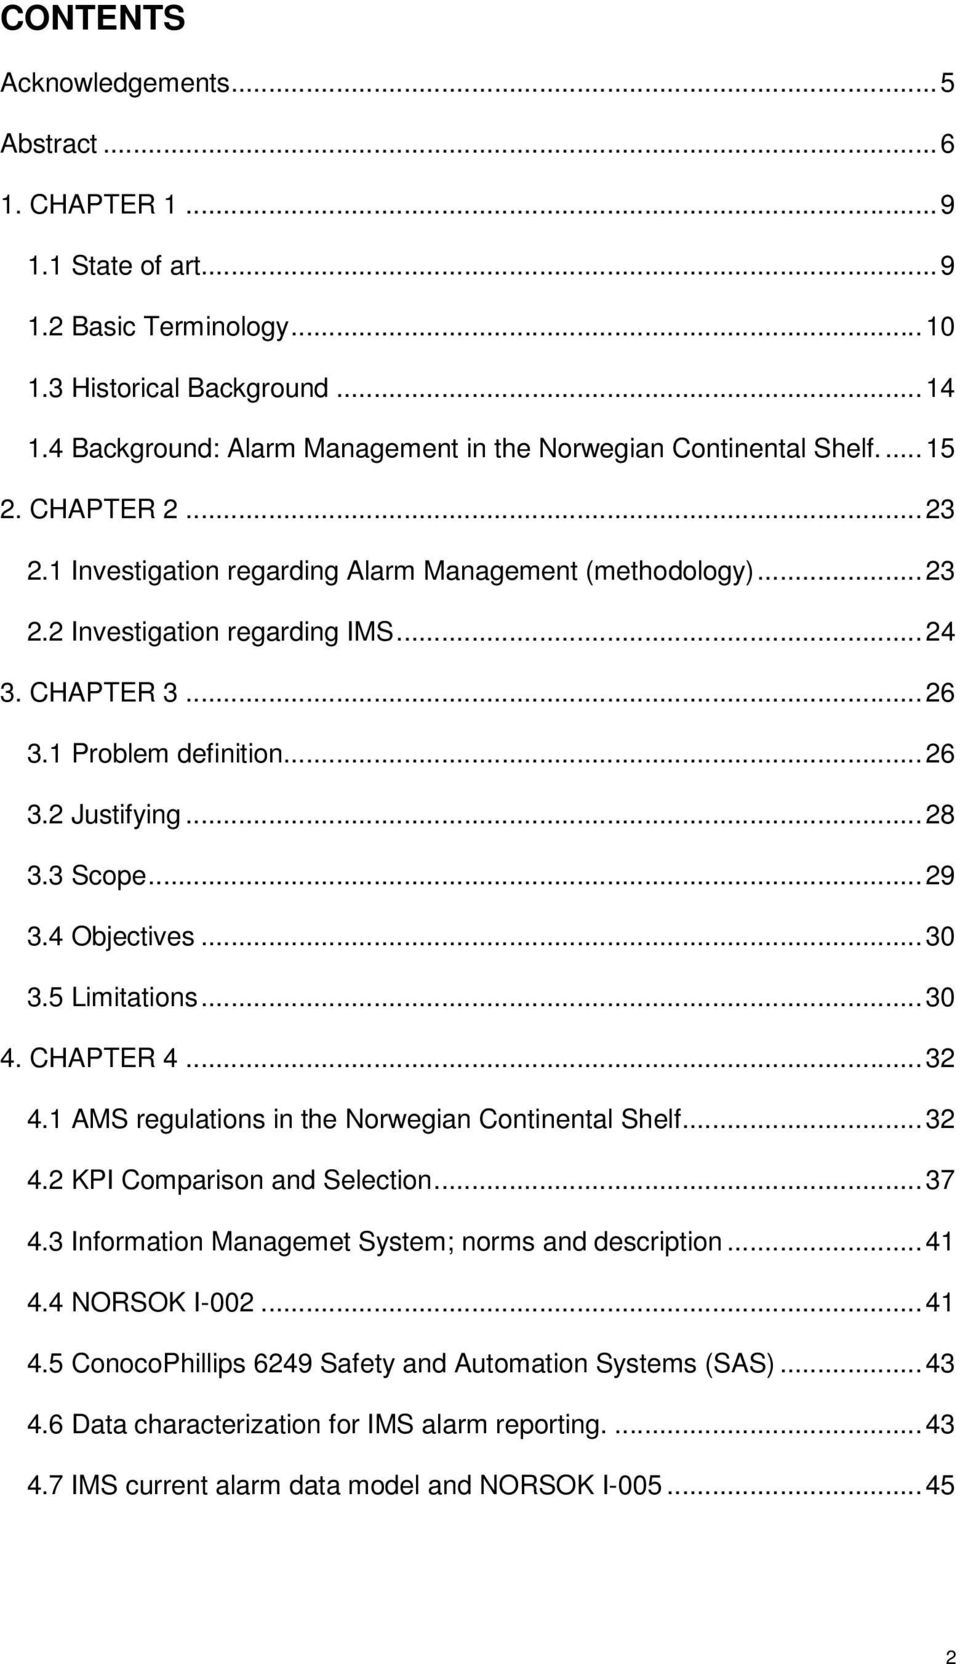 CHAPTER 3... 26 3.1 Problem definition... 26 3.2 Justifying... 28 3.3 Scope... 29 3.4 Objectives... 30 3.5 Limitations... 30 4. CHAPTER 4... 32 4.1 AMS regulations in the Norwegian Continental Shelf.